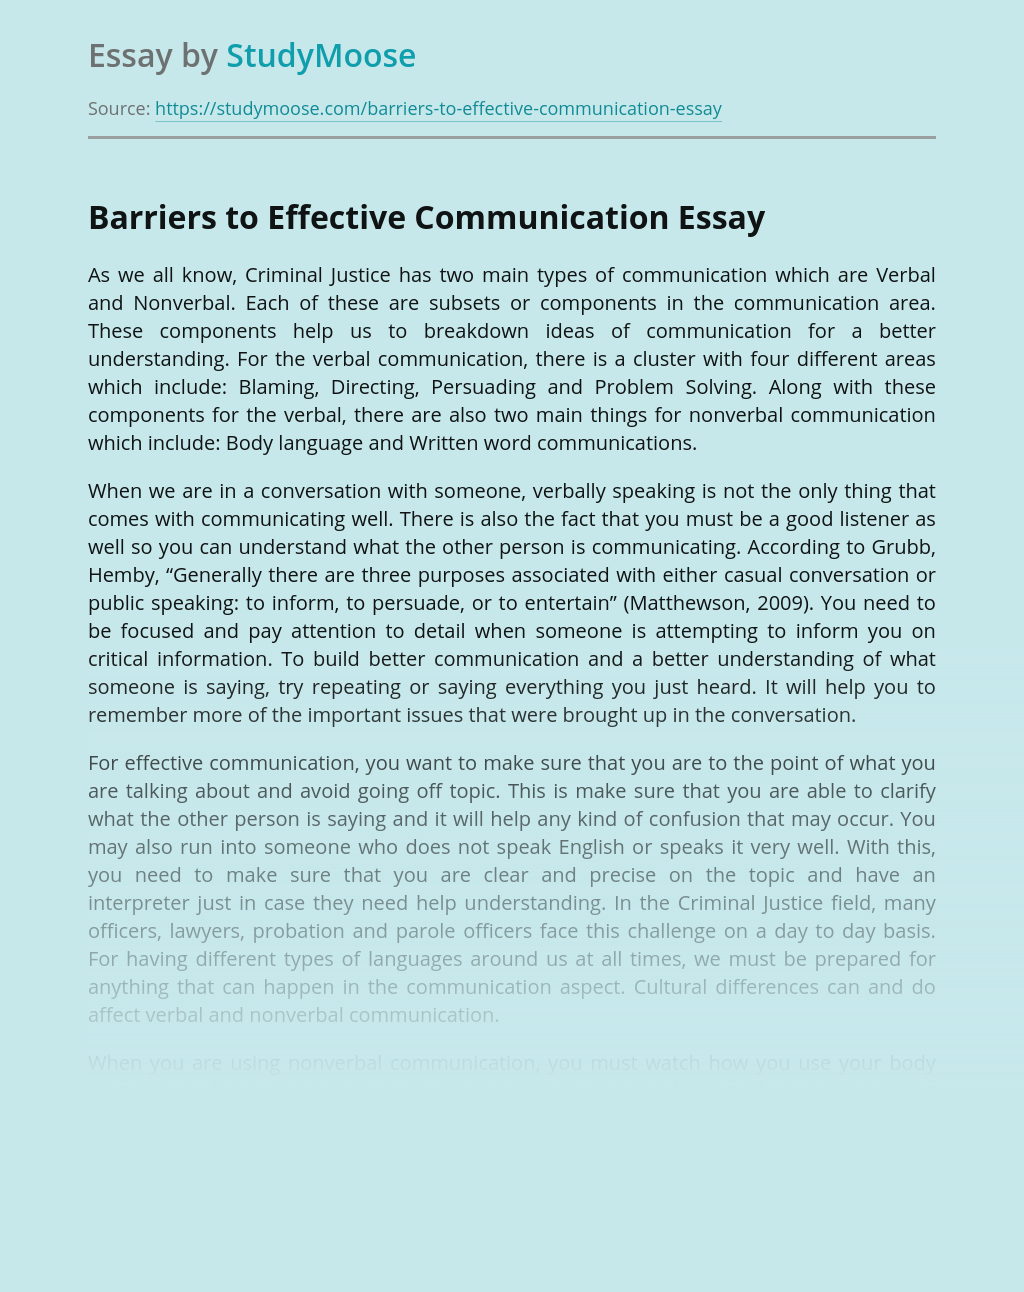 Barriers to Effective Verbal and Nonverbal Communication